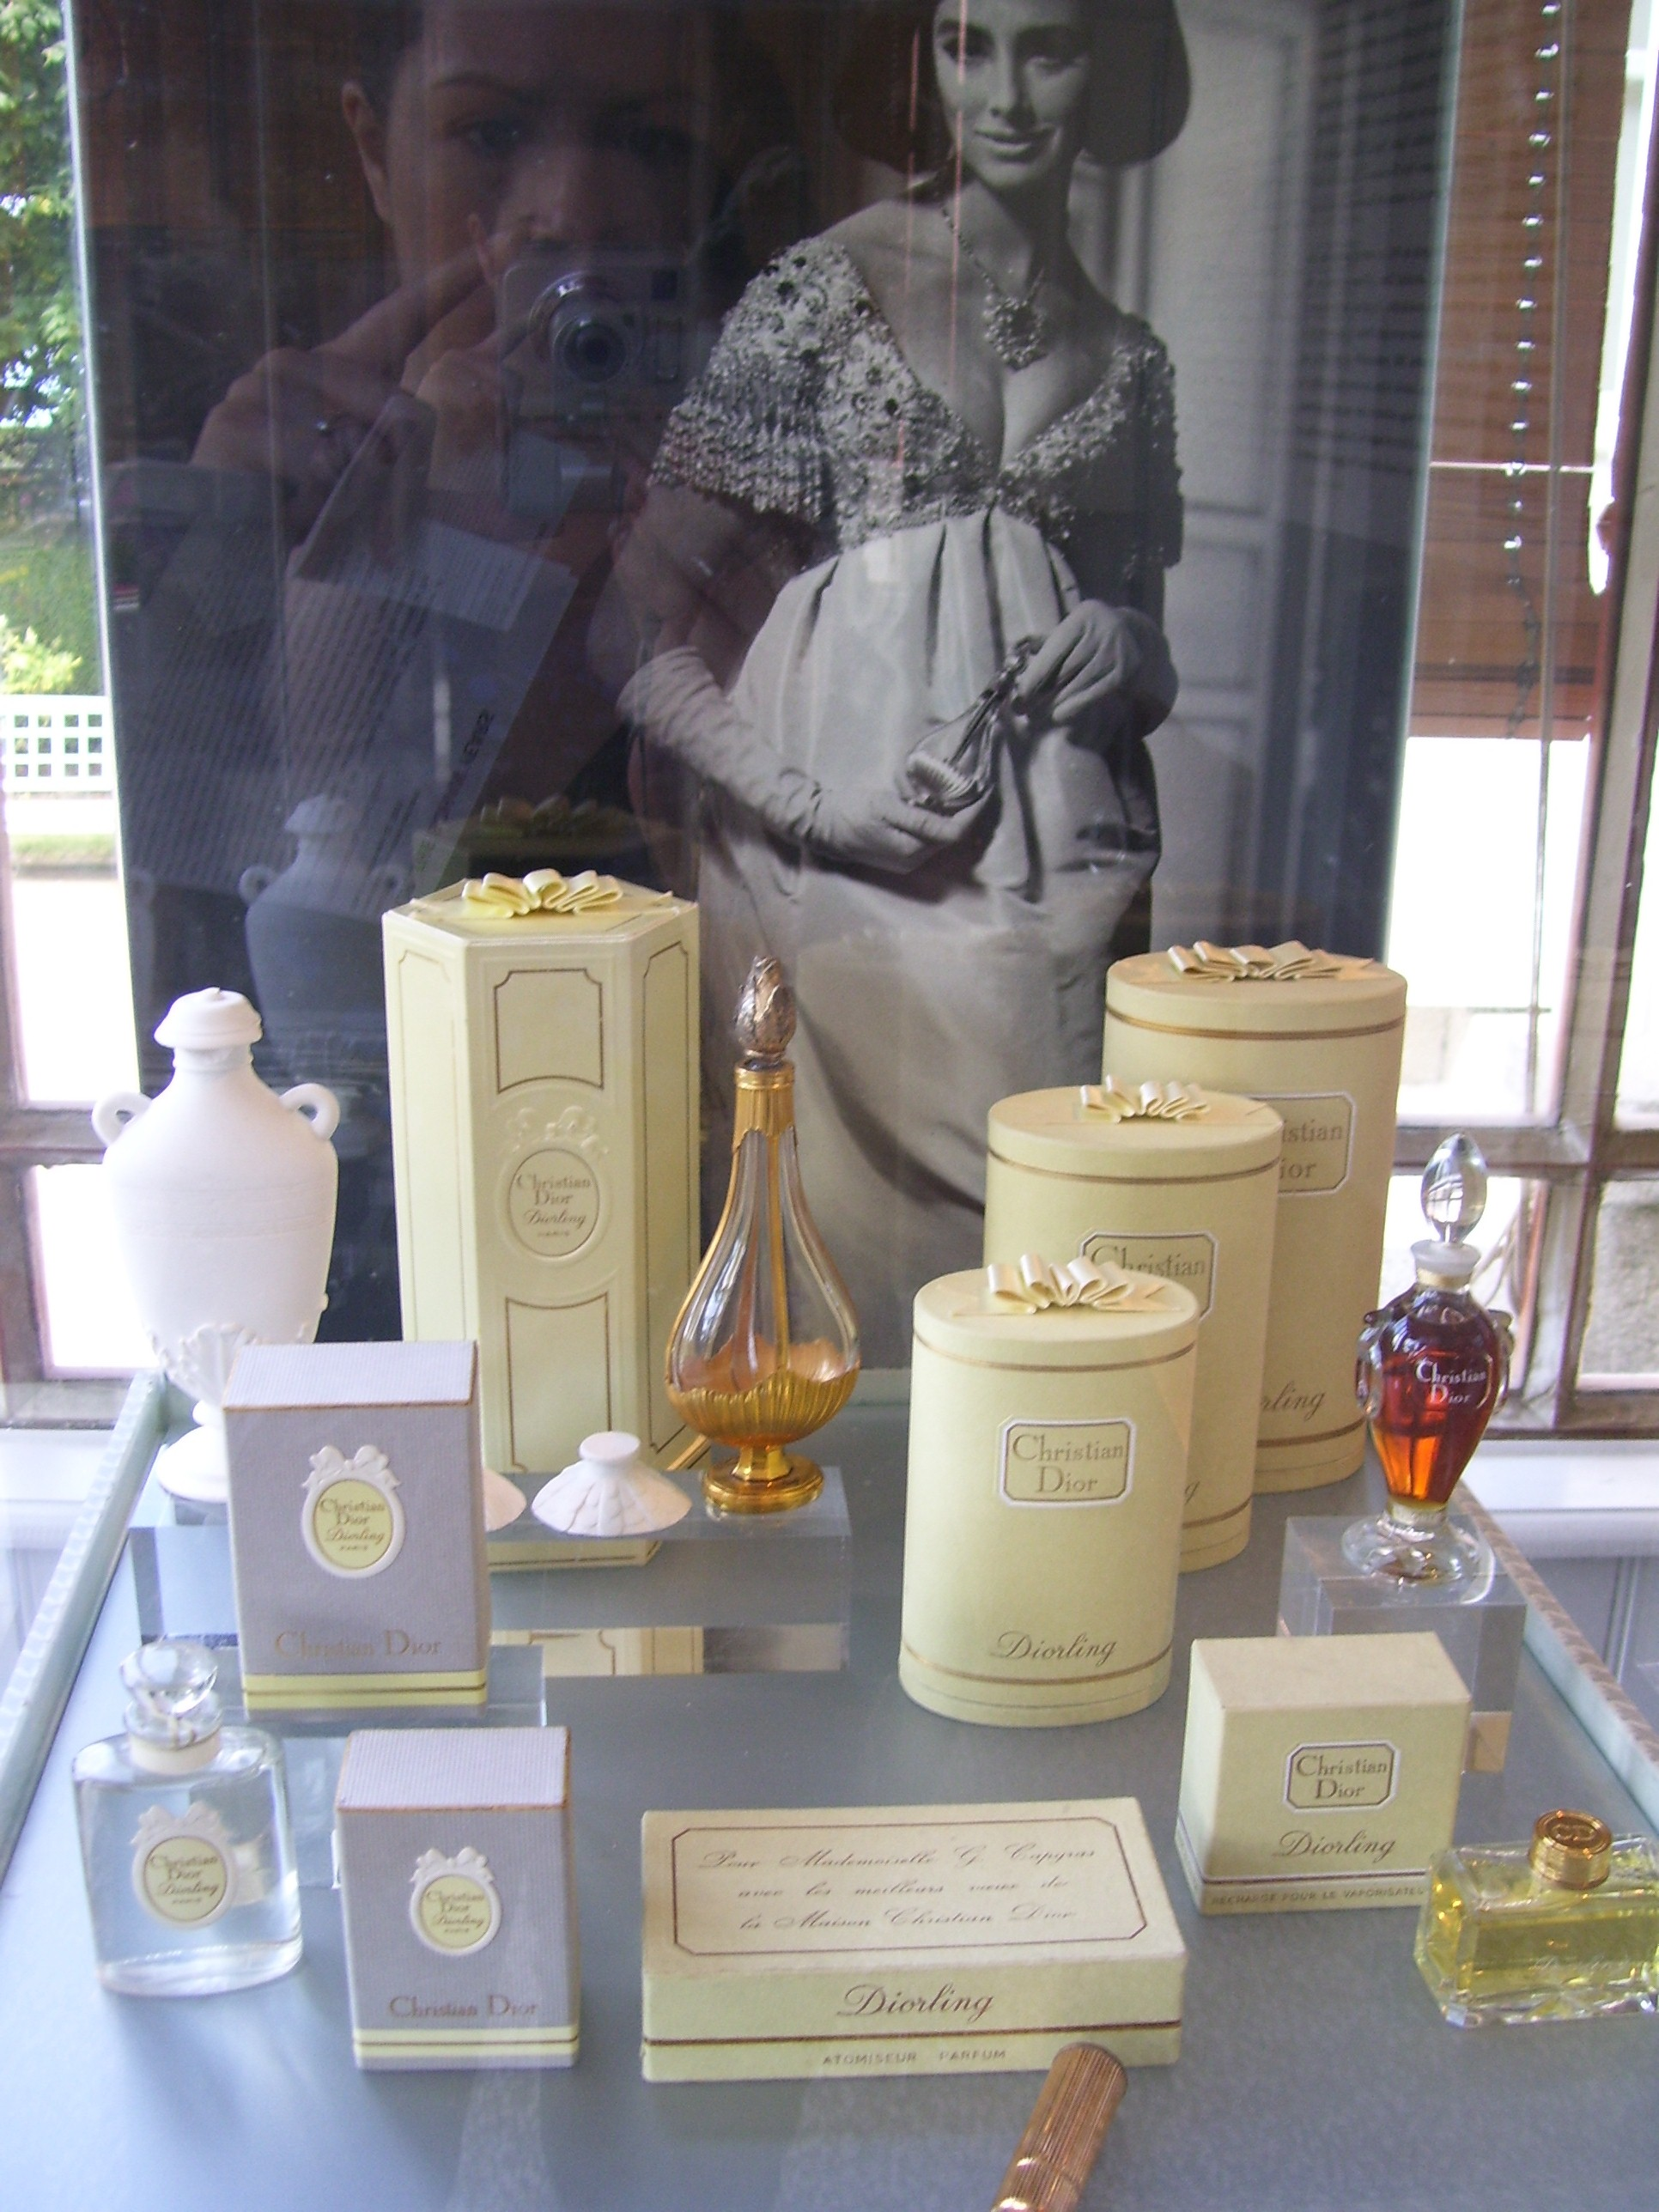 Christian Dior Museum Perfume Collection